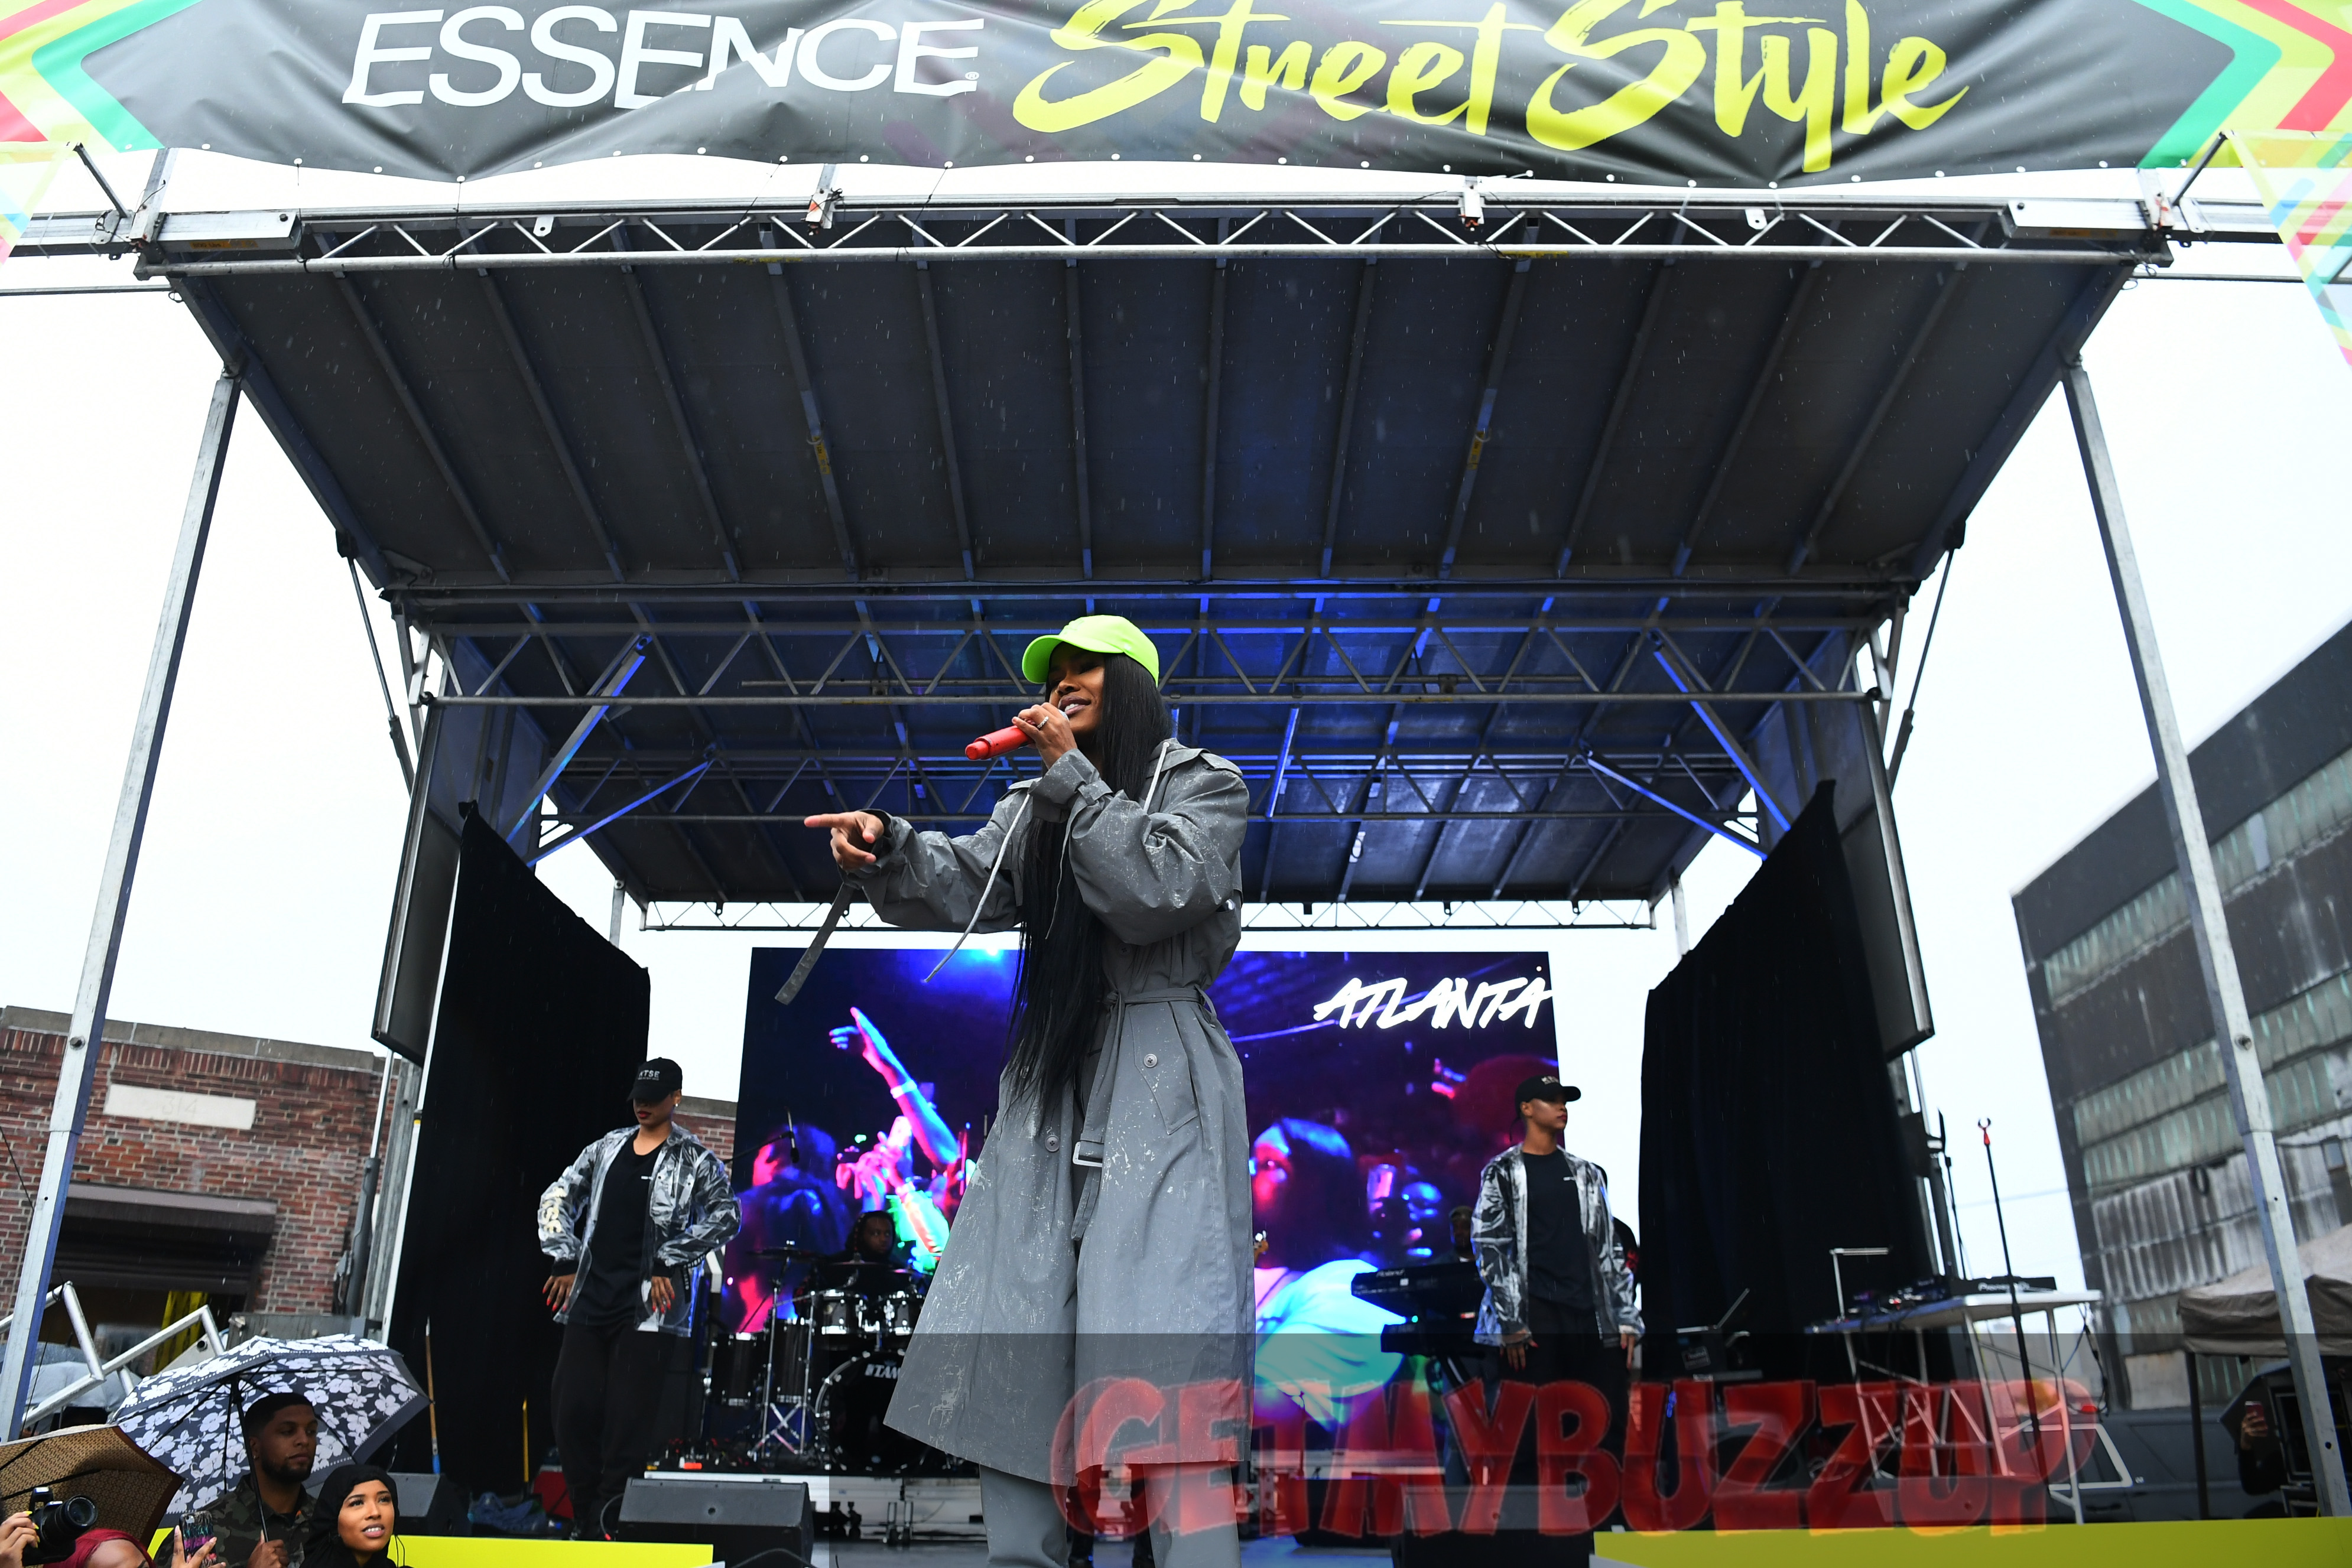 ESSENCE CELEBRATED STYLE, CULTURE AND COMMUNITY WITH THE RETURN OF THE 2018 ESSENCE STREET STYLE FESTIVAL IN BROOKLYN [PHOTOS]